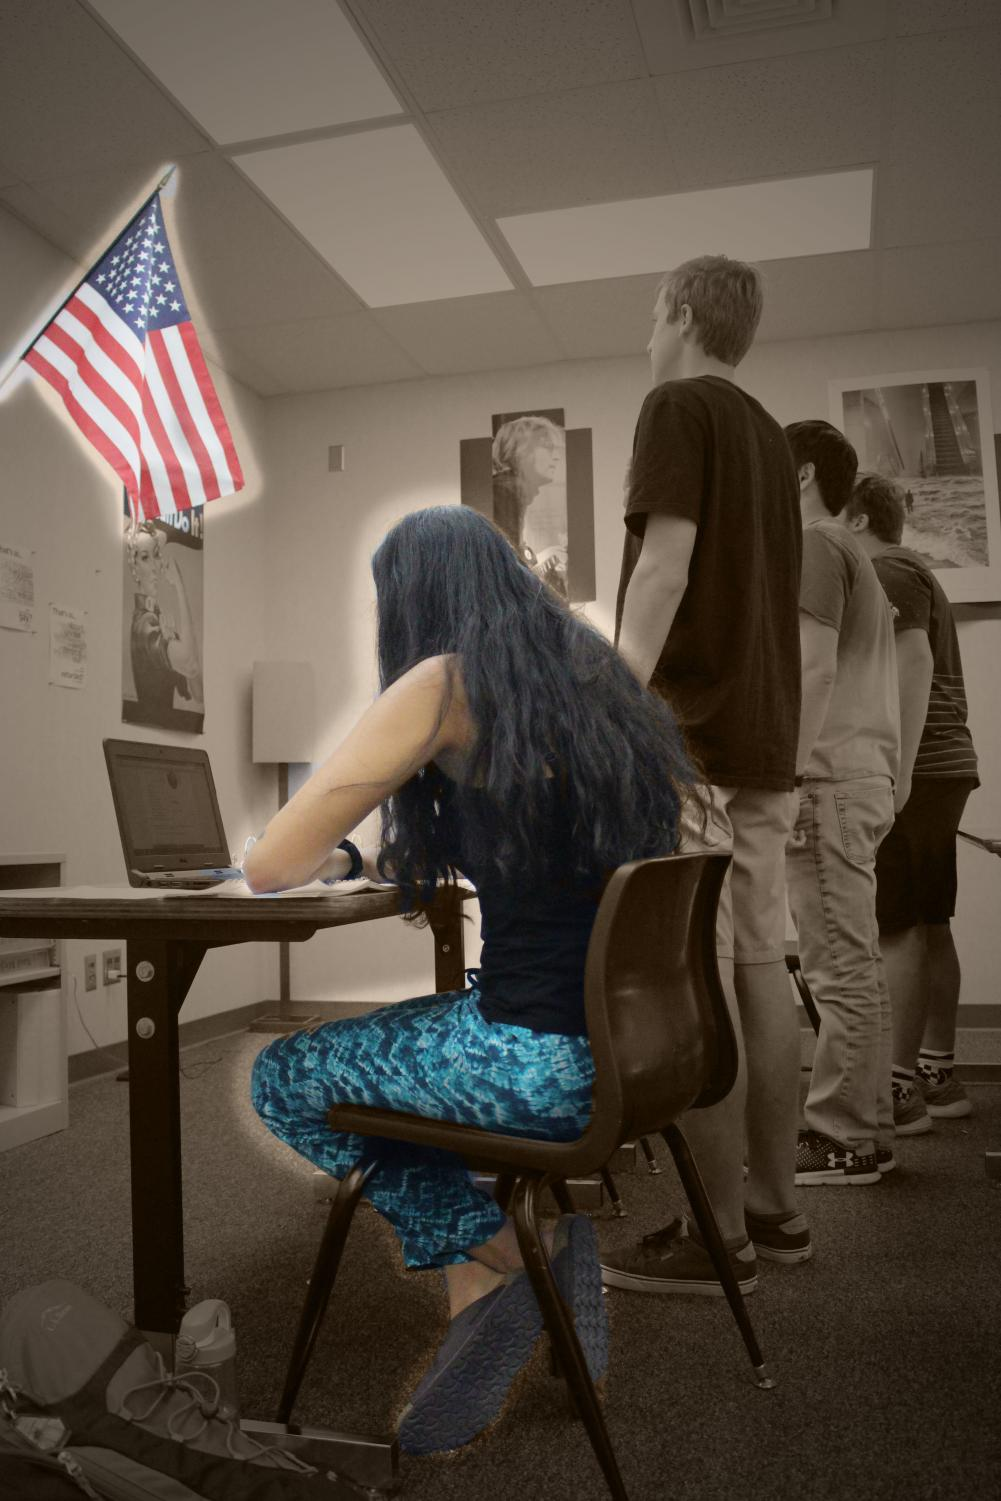 As a result of a Supreme Court case decided in 1943, students in the United States have the right to respectfully decline to participate in the Pledge of Allegiance.